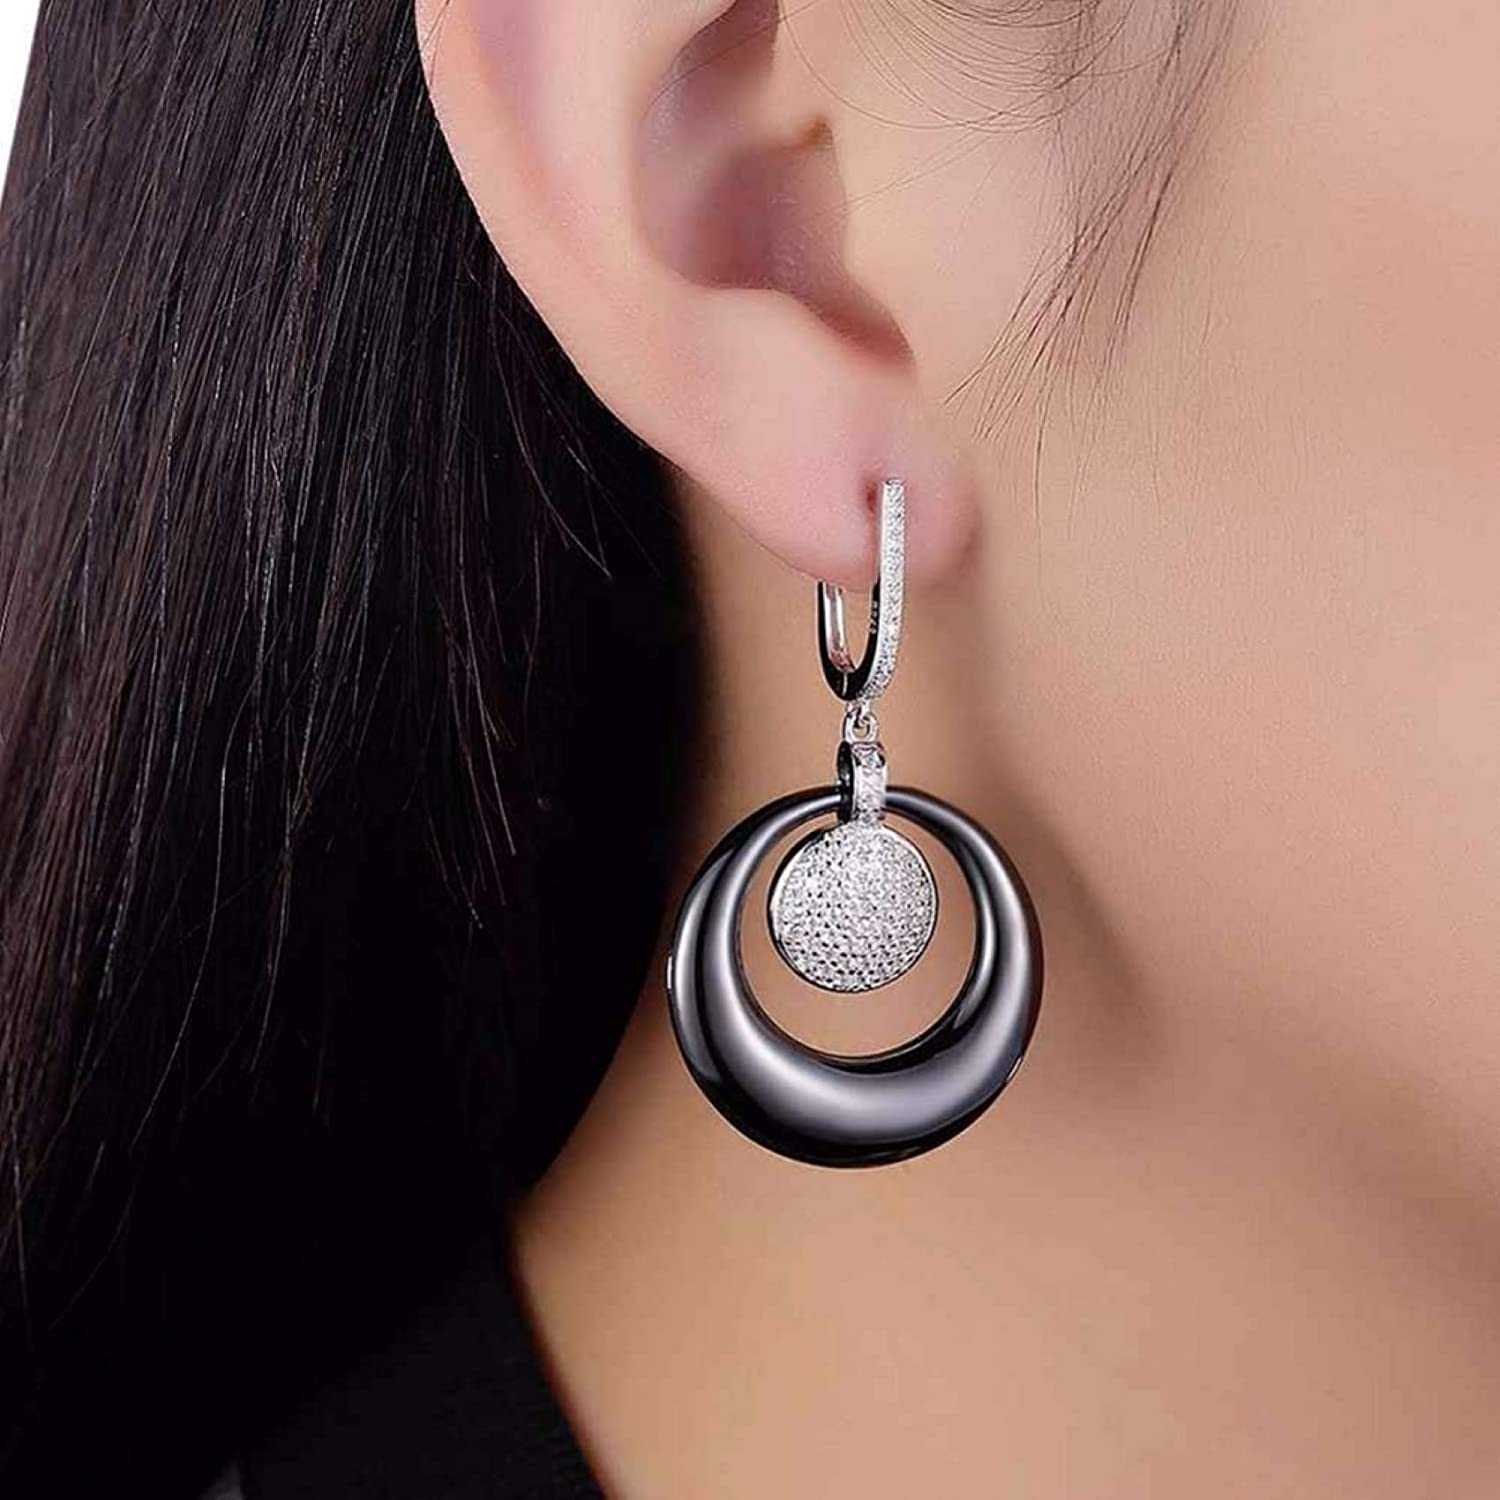 Silver Earrings By CS-DB Vintage Black Round Double Ceramic Micro-Inserted Zircon Earrings For Womens